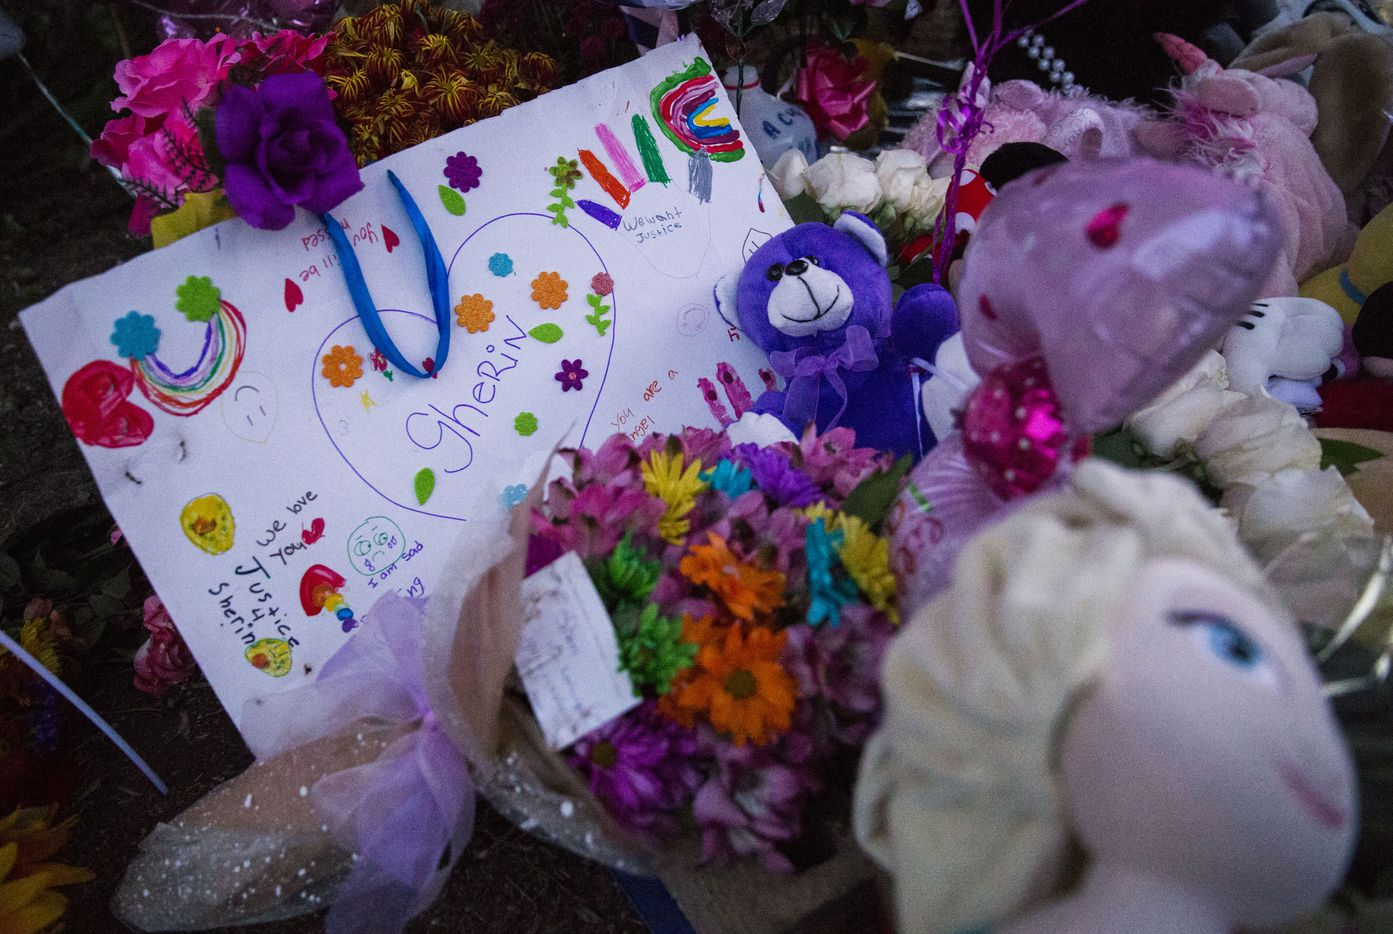 Signs, flowers and other items collect at a memorial for missing 3-year-old Sherin Mathews on Sunday at a tree behind her home.